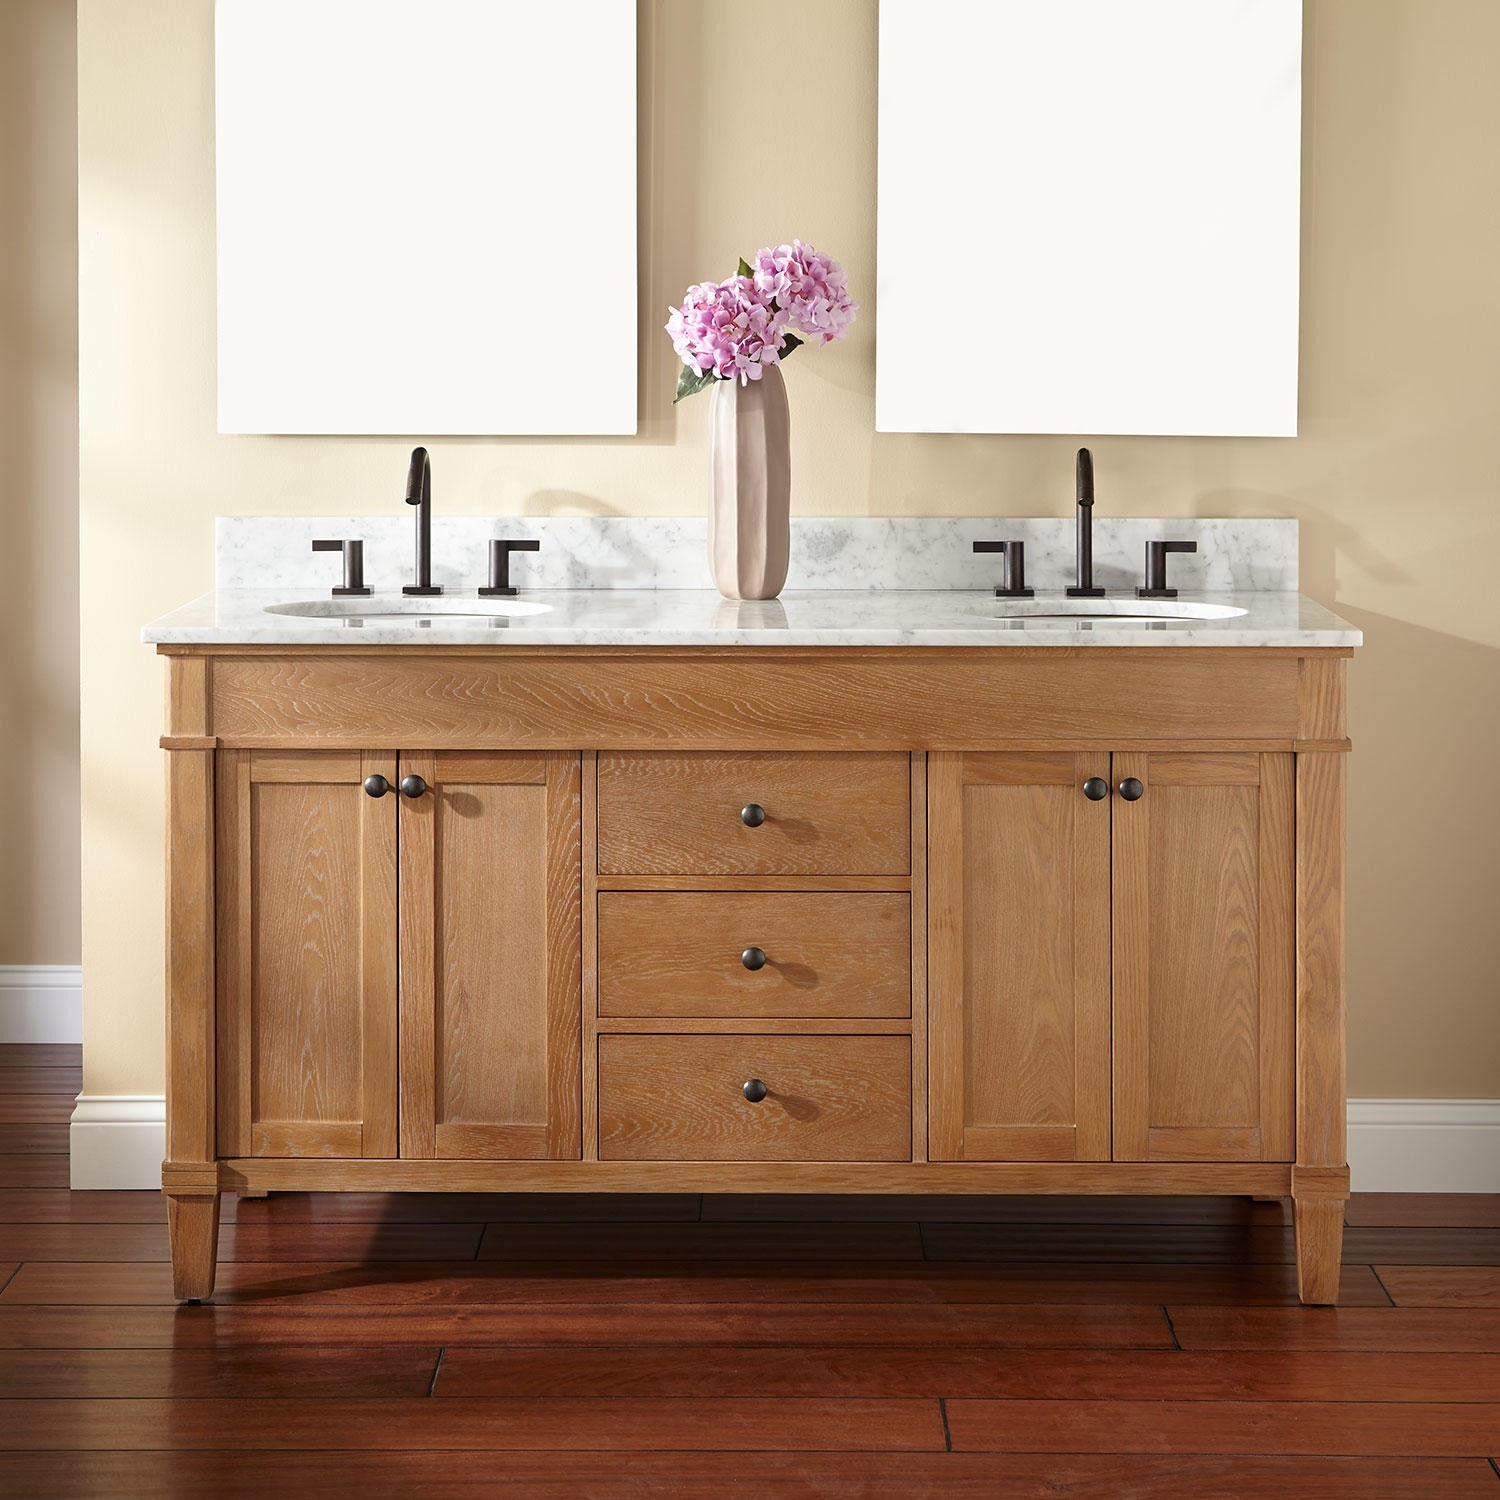 Bathroom Lavatory Cabinets